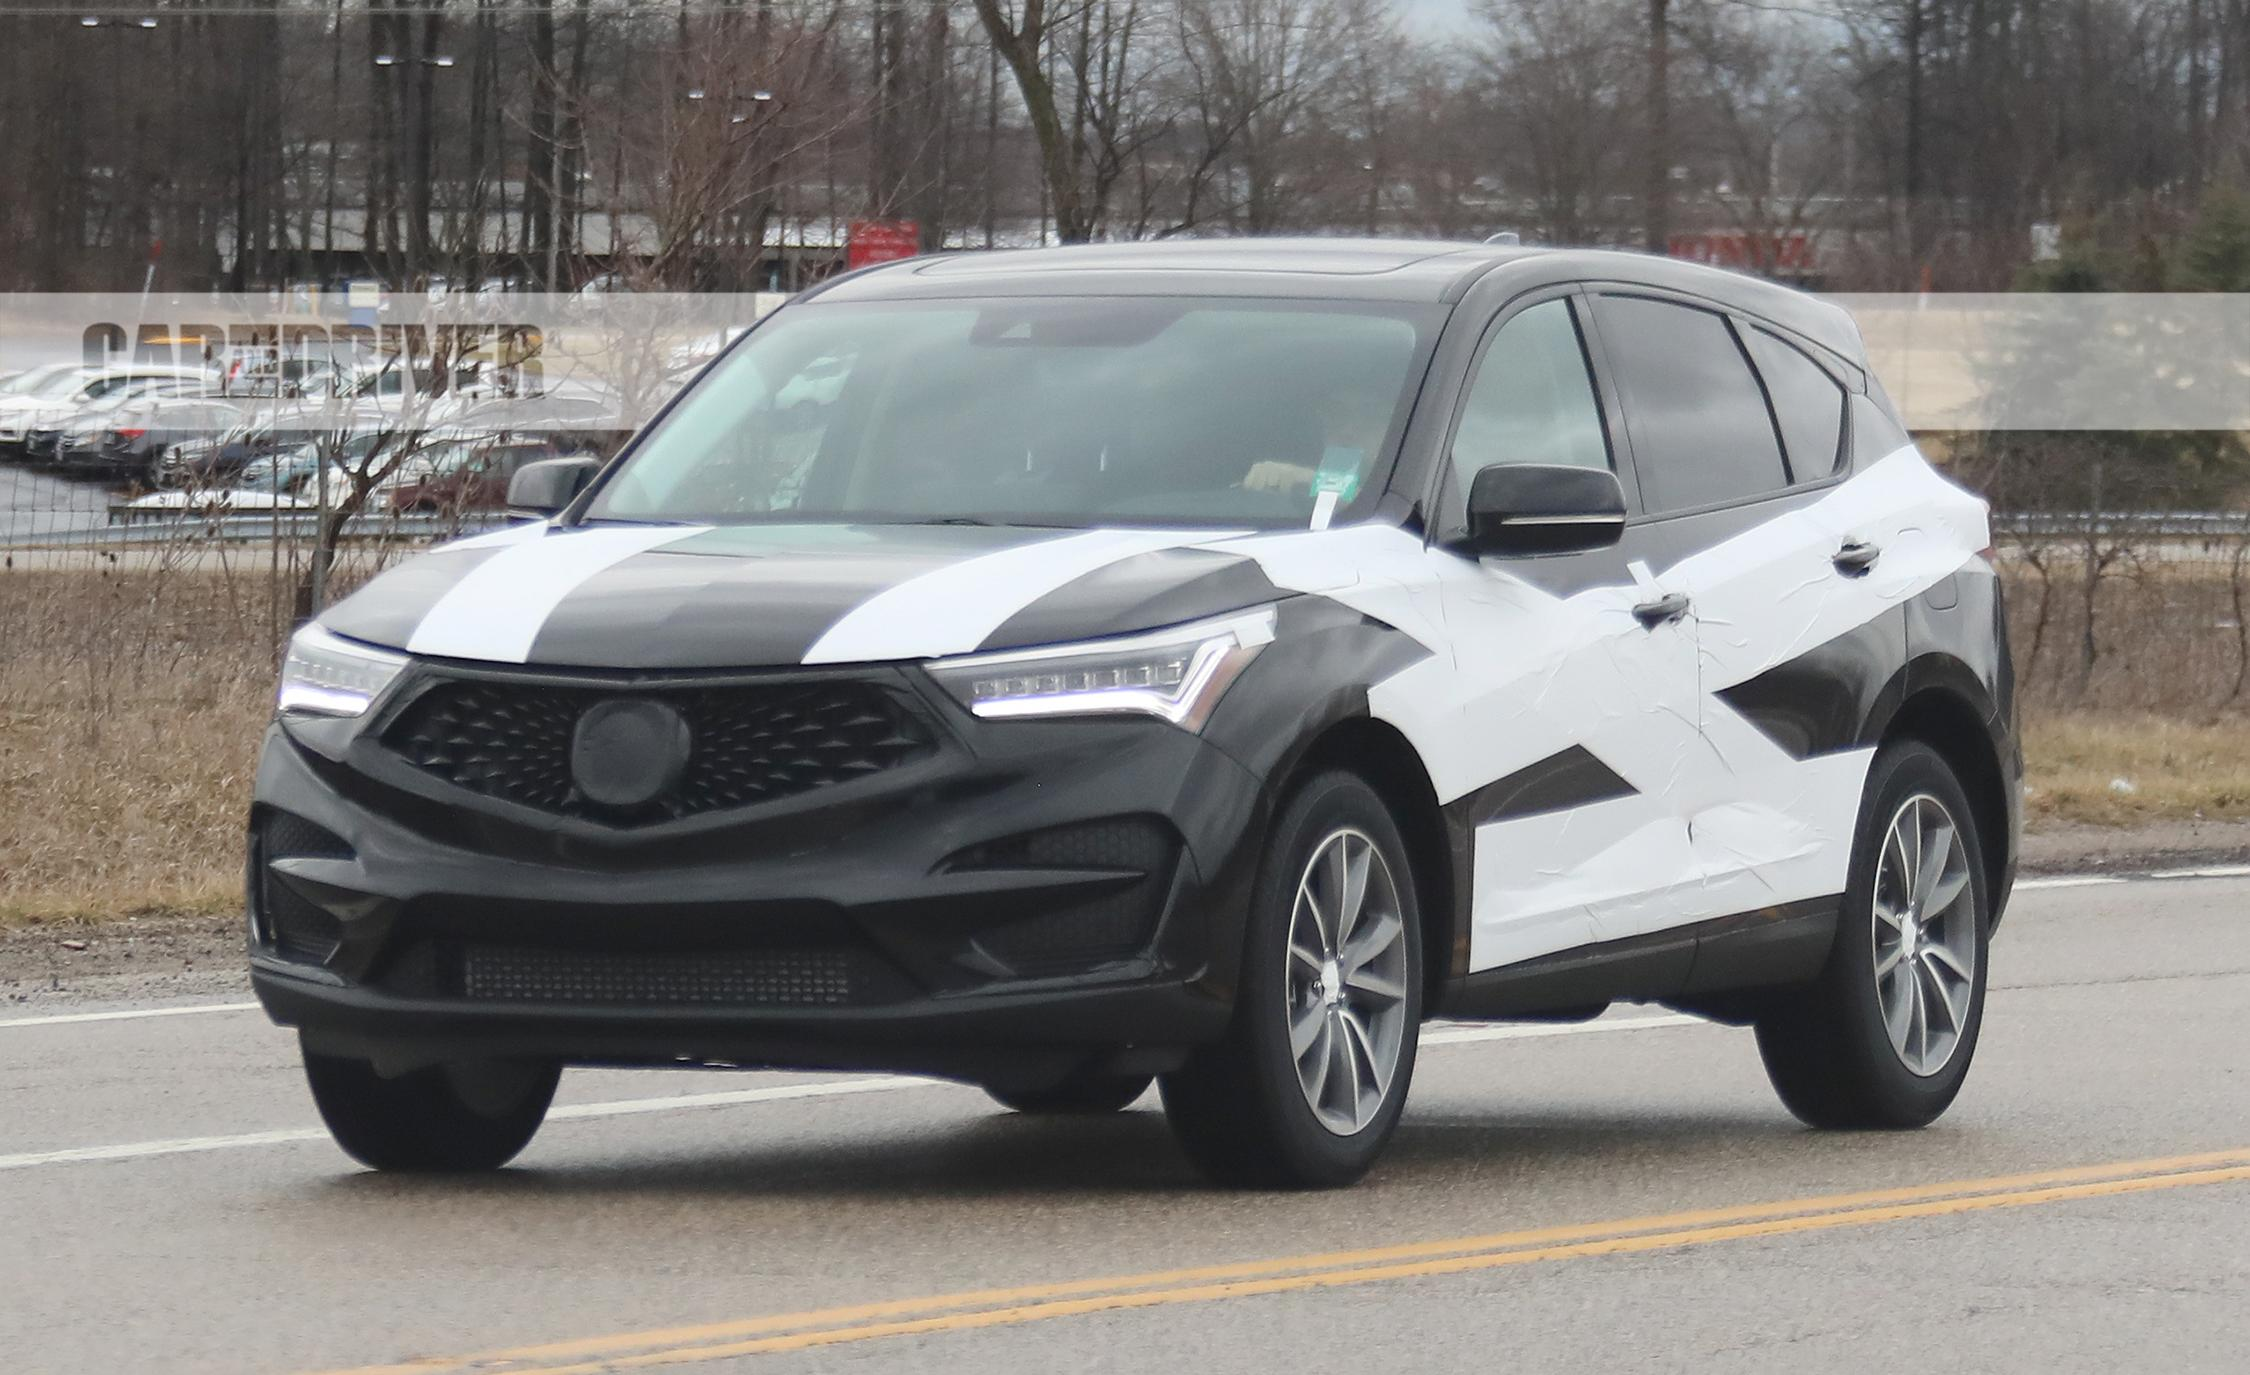 2019 acura rdx spied out and about in skimpy camo. Black Bedroom Furniture Sets. Home Design Ideas